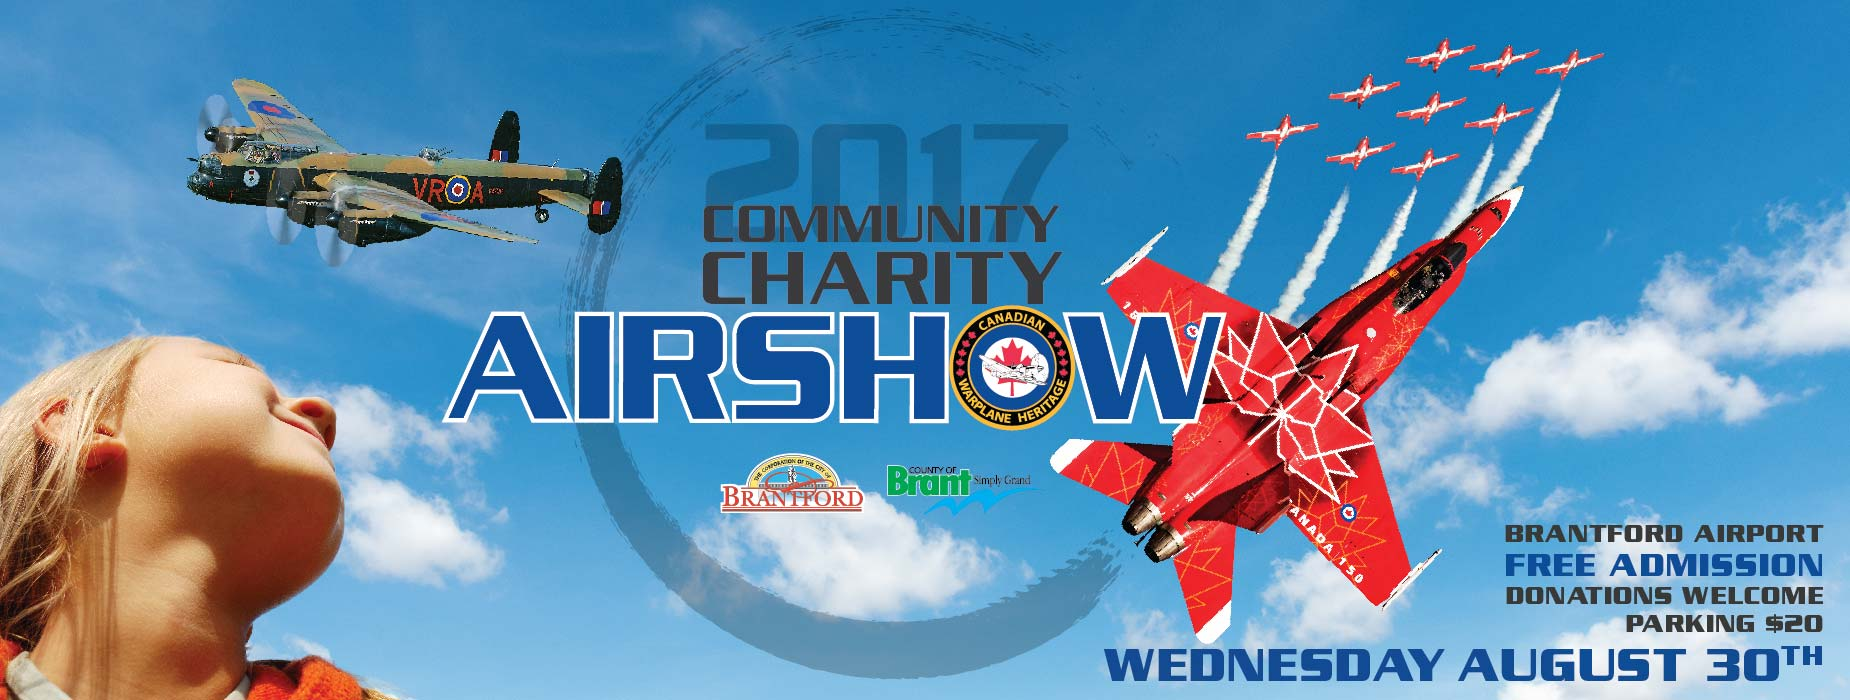 Poster for - Community Charity Airshow